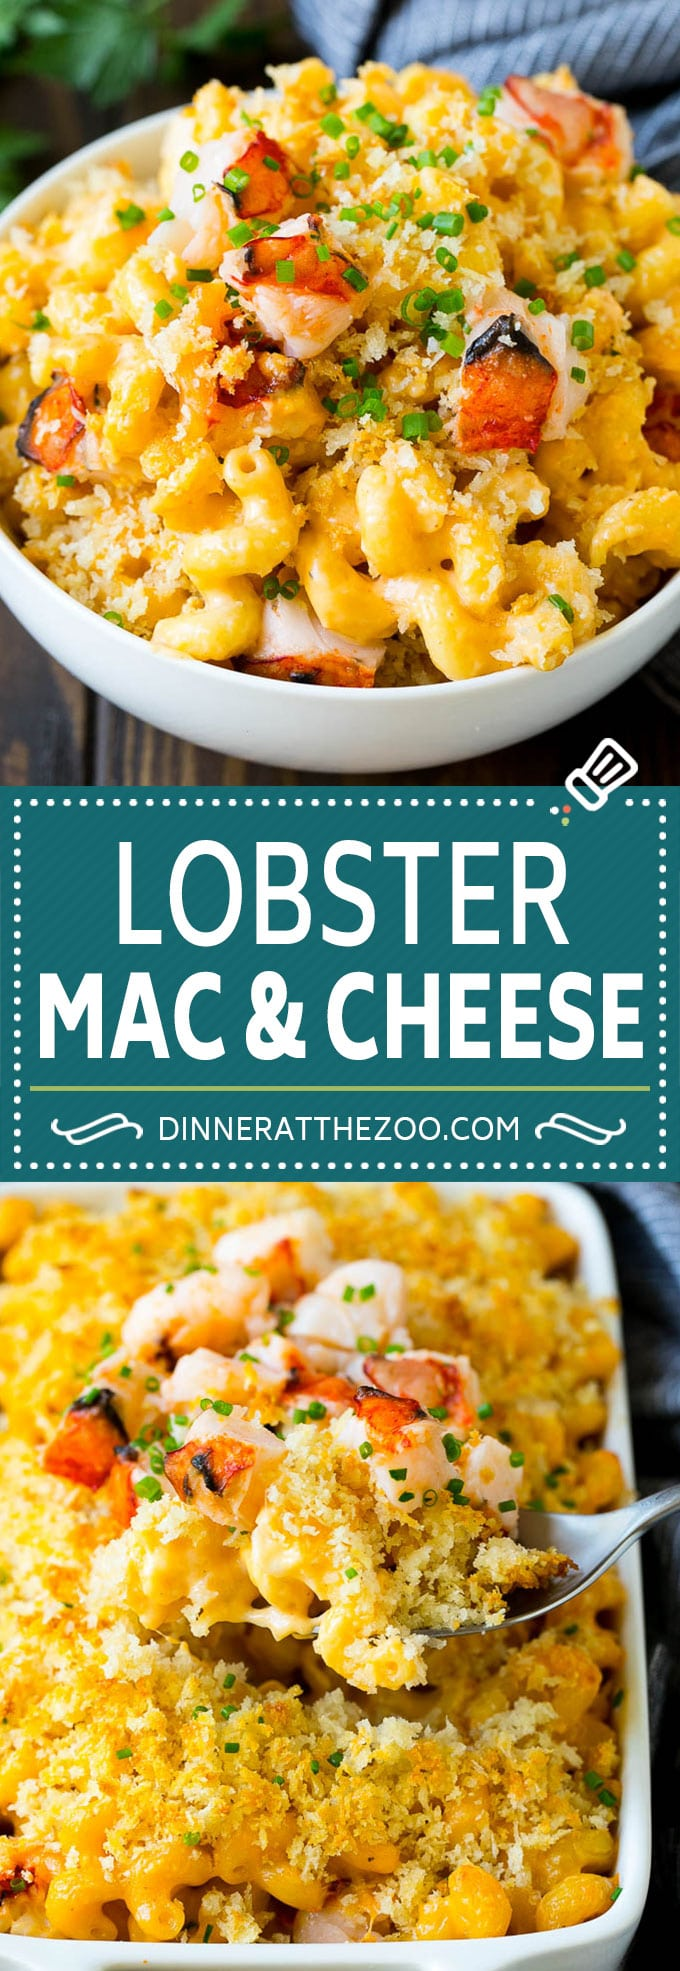 Lobster Mac and Cheese Recipe   Lobster Macaroni and Cheese   Baked Mac and Cheese #pasta #macandcheese #macaroni #lobster #cheese #dinner #dinneratthezoo